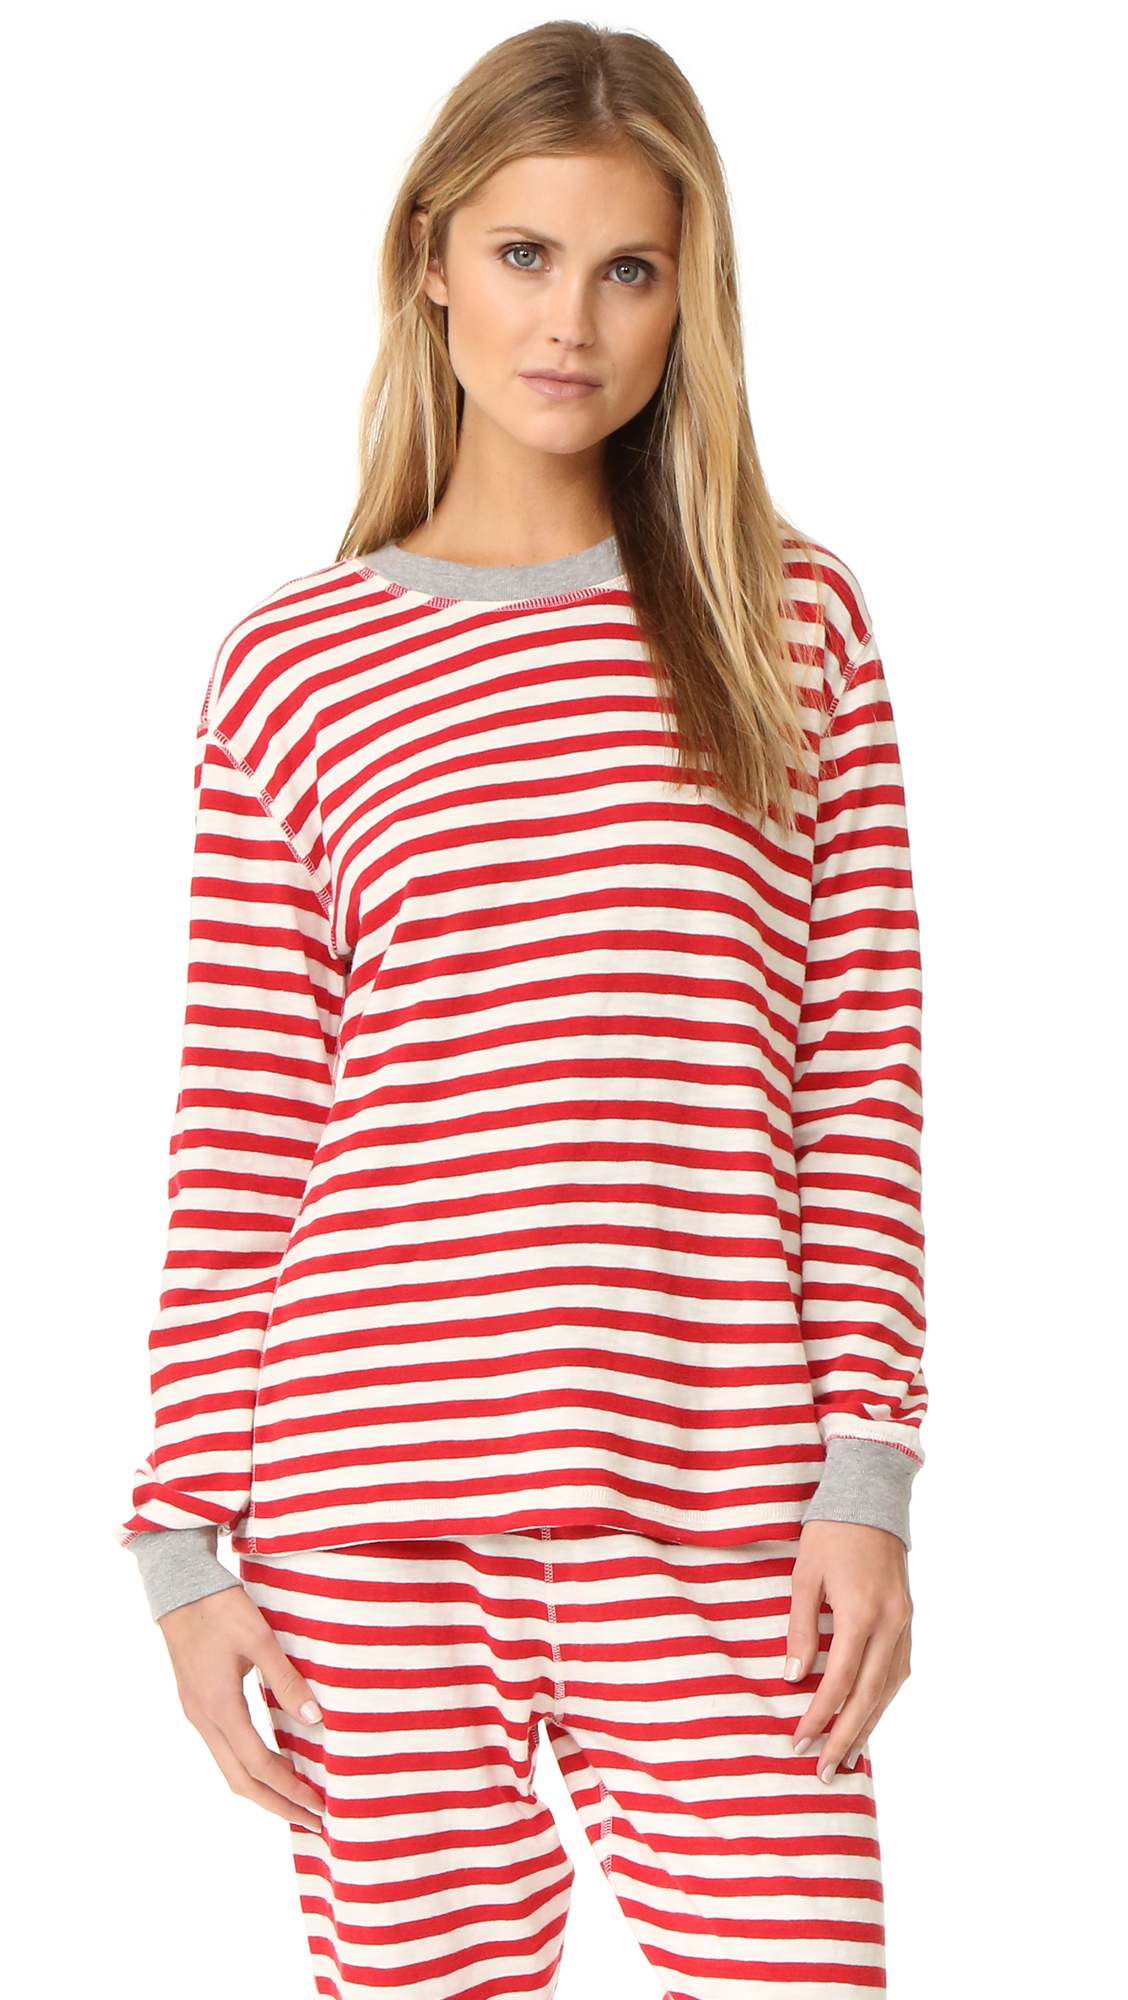 Sleepy Jones Helen Pajama Top - Red